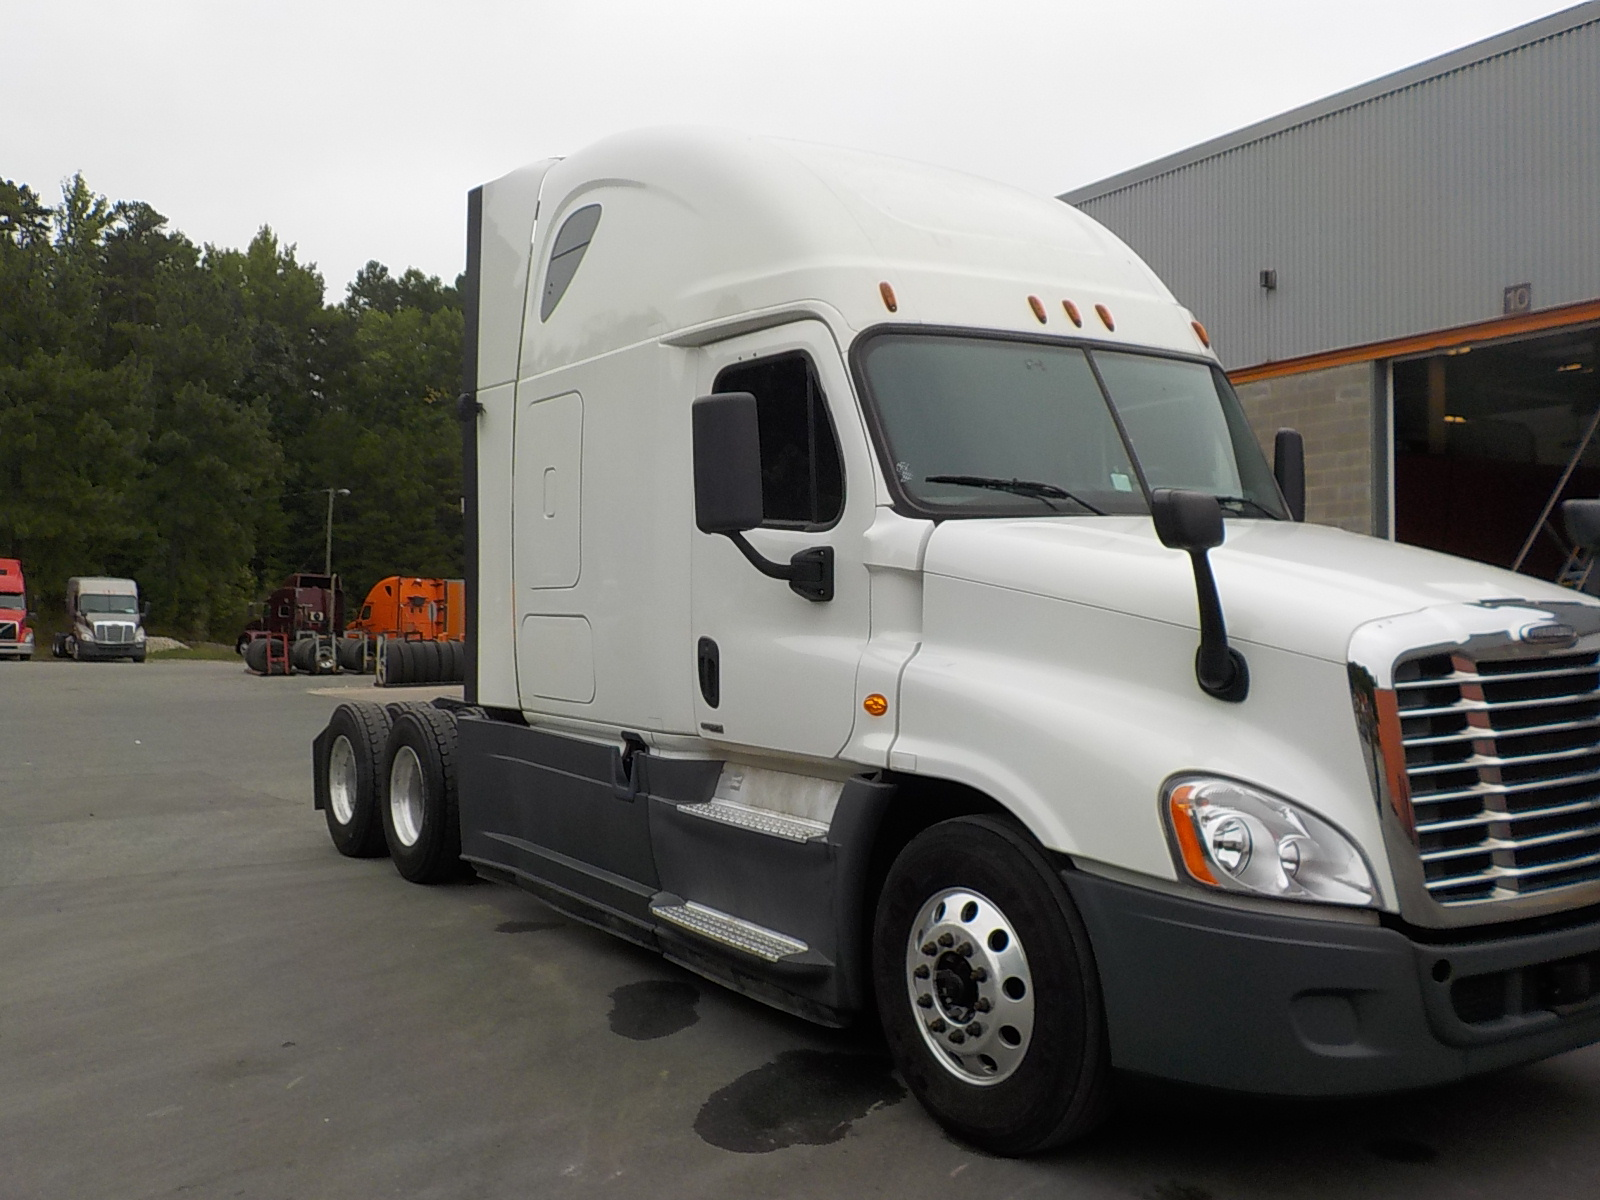 USED 2014 FREIGHTLINER CASCADIA SLEEPER TRUCK #131843